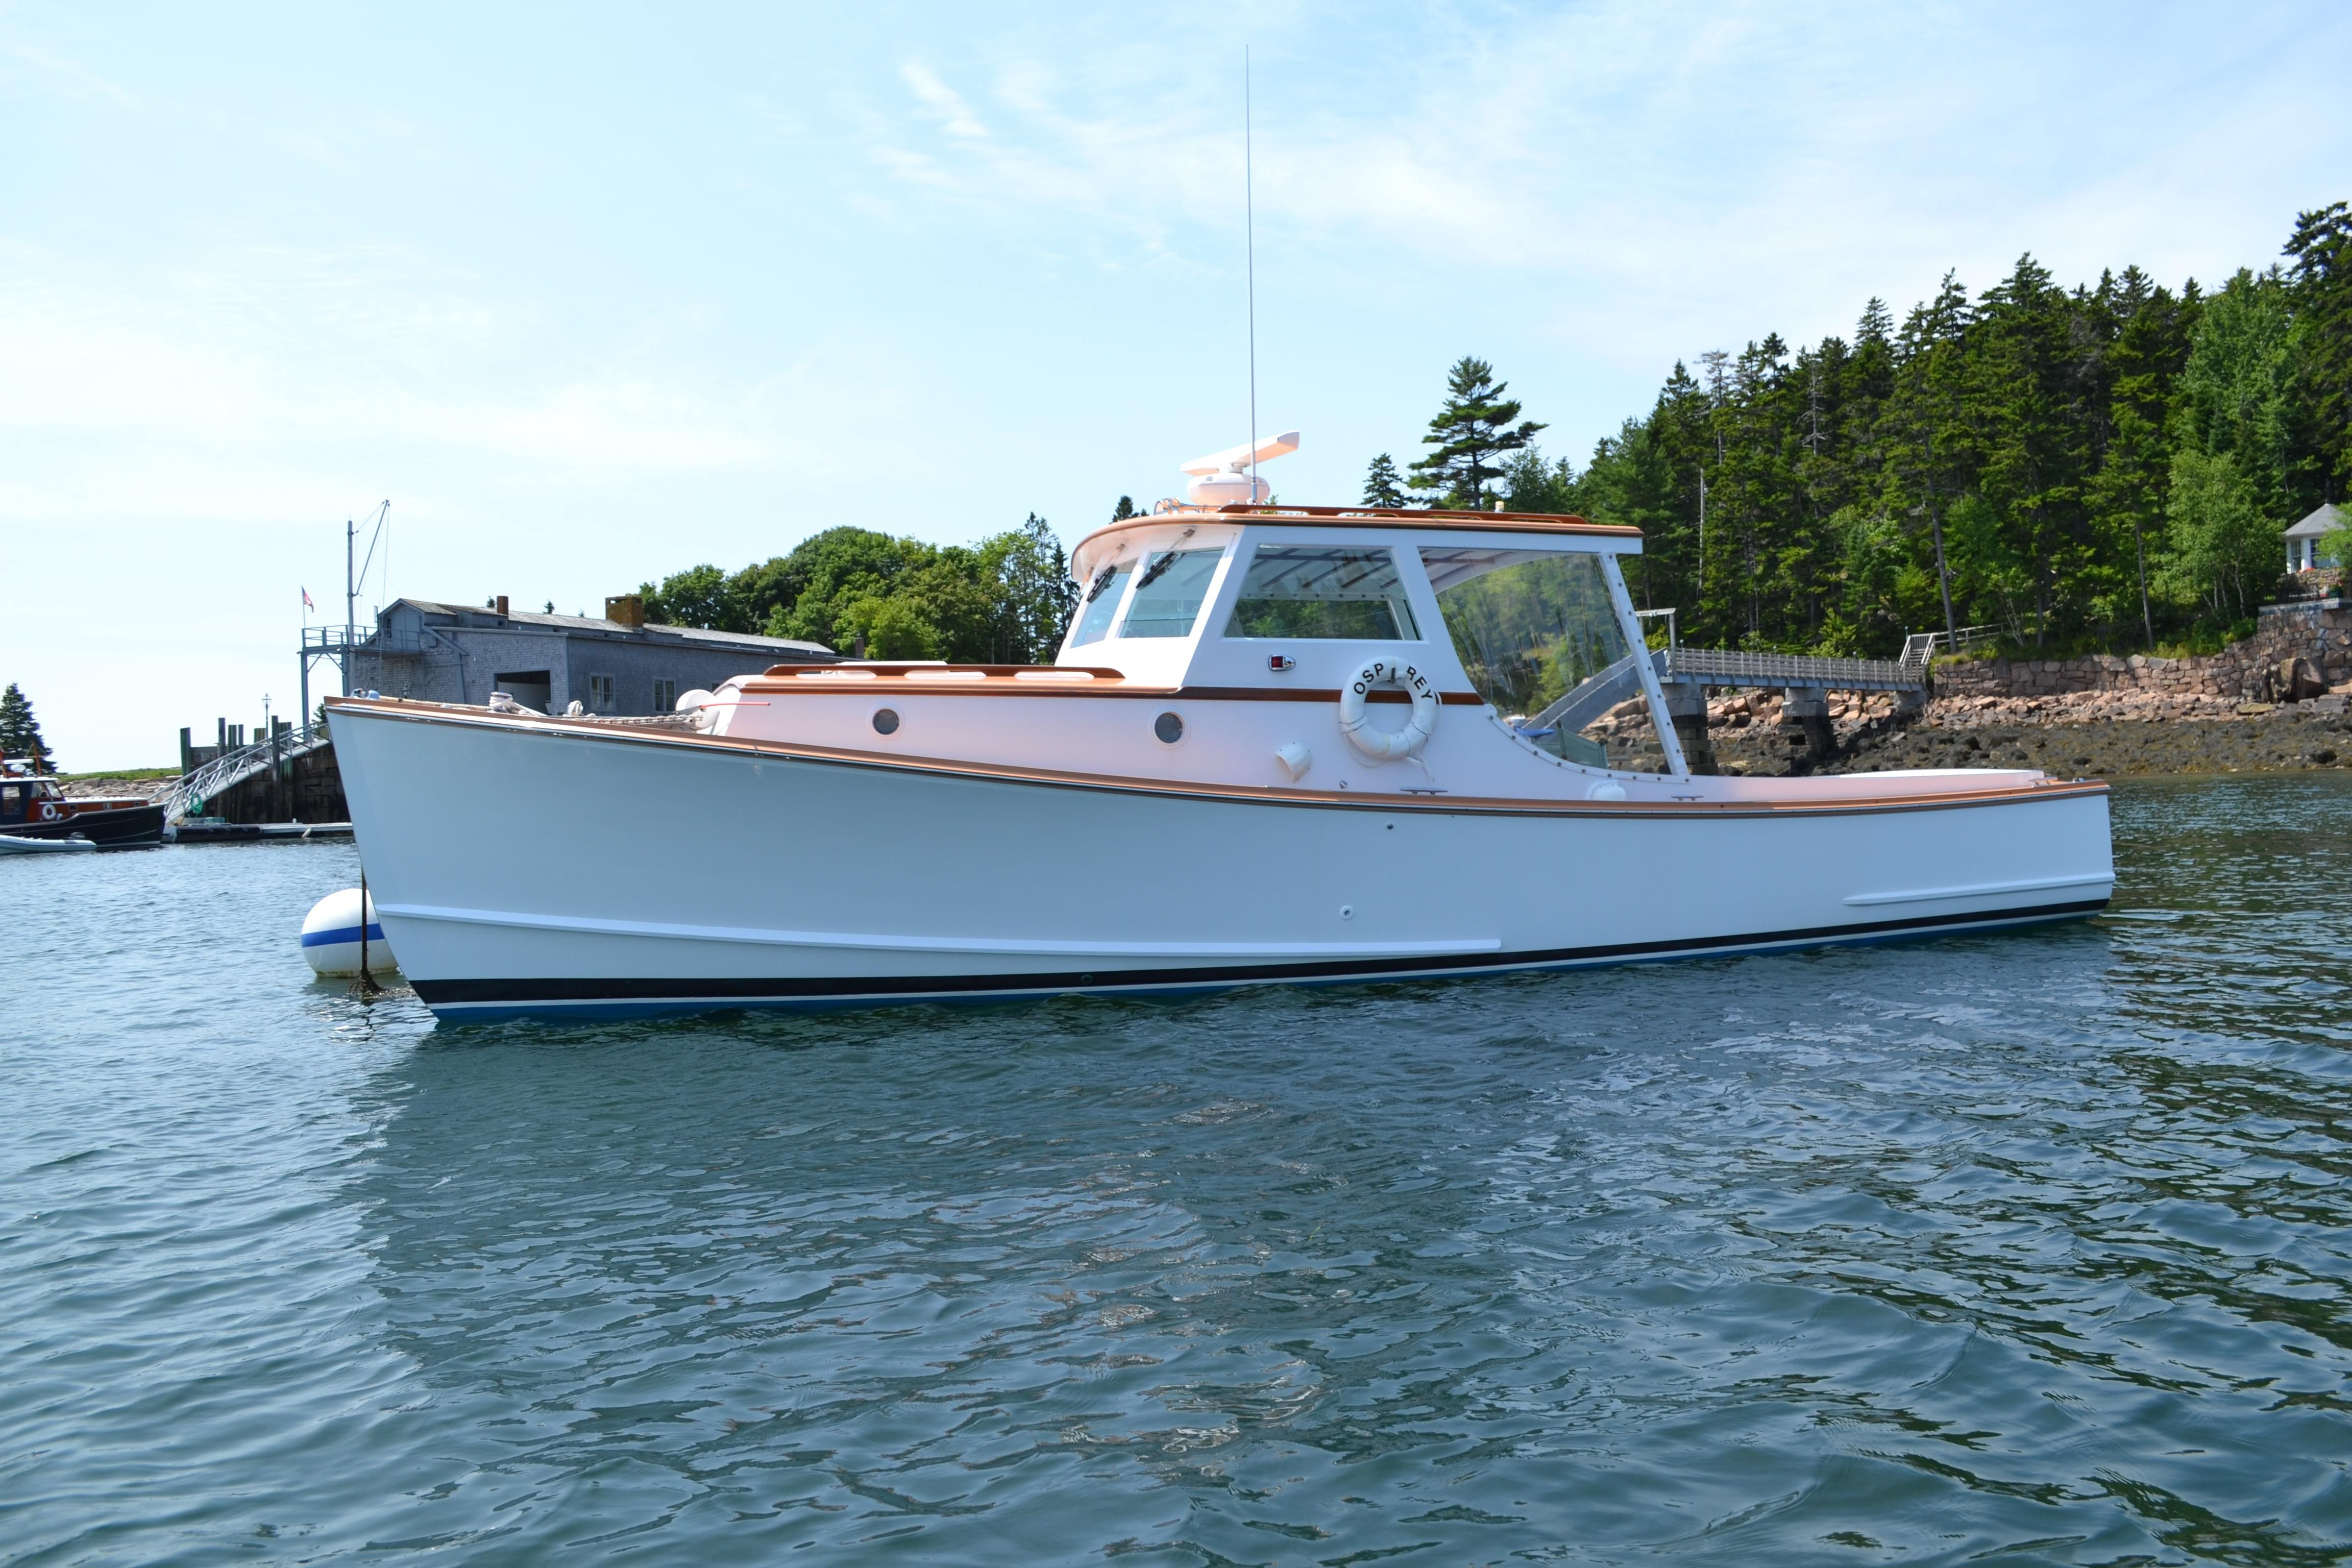 1986 jarvis newman picnic cruiser power boat 32 feet. Year: 1986. Condition: Used length: 32 Foot